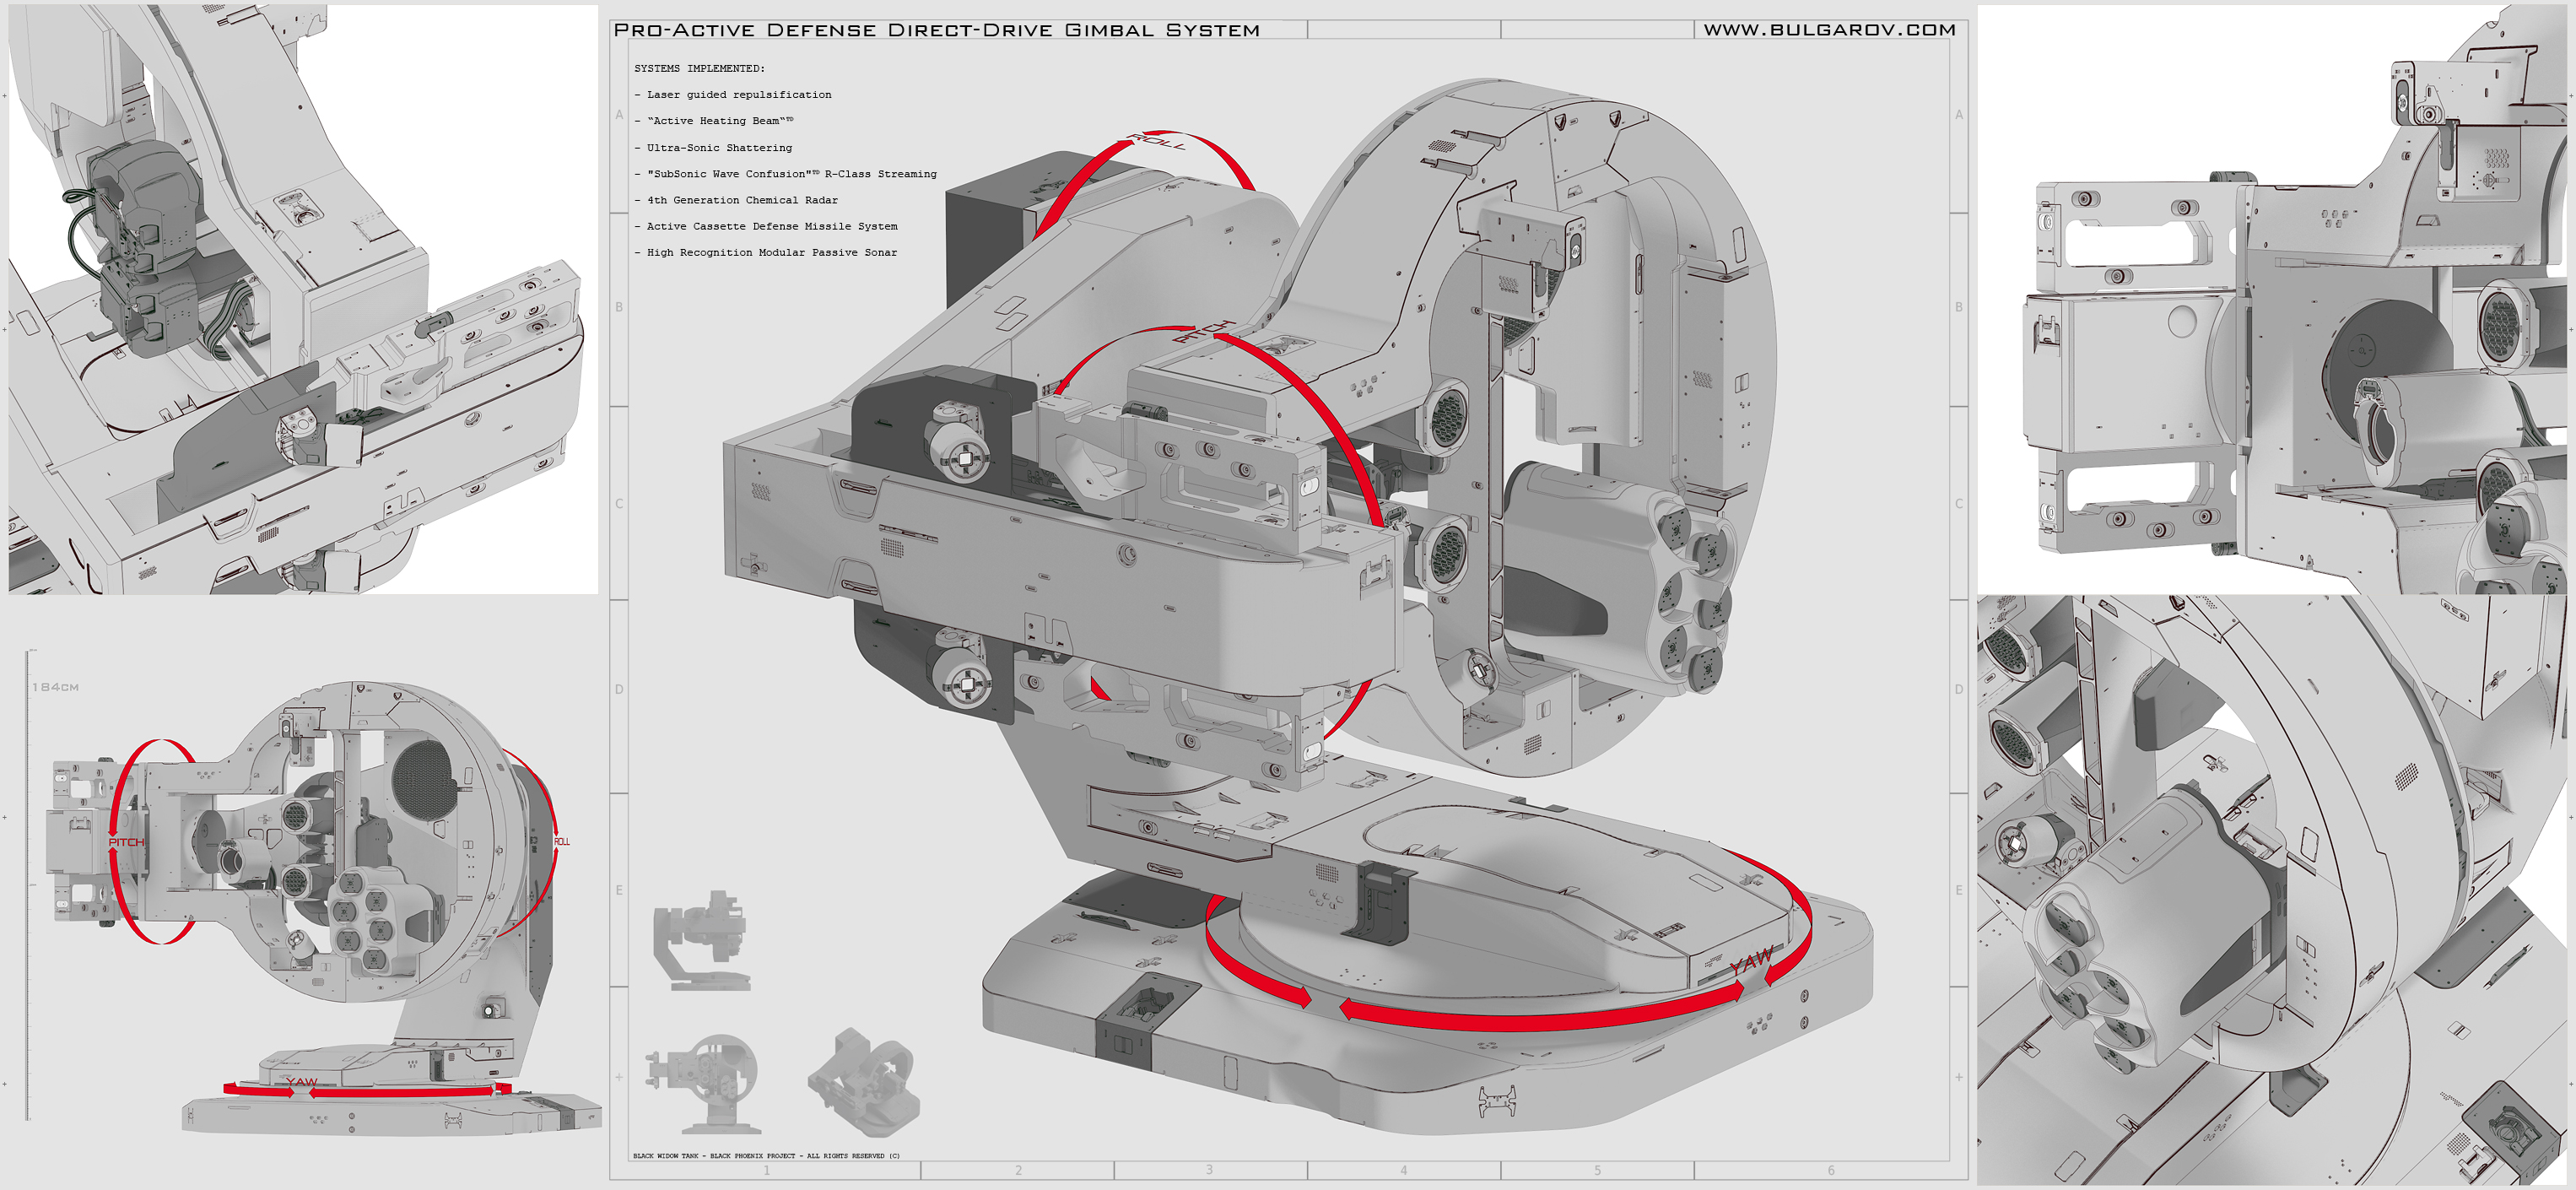 Concept art of a gimbal defense system: another work from the Black Phoenix universe.